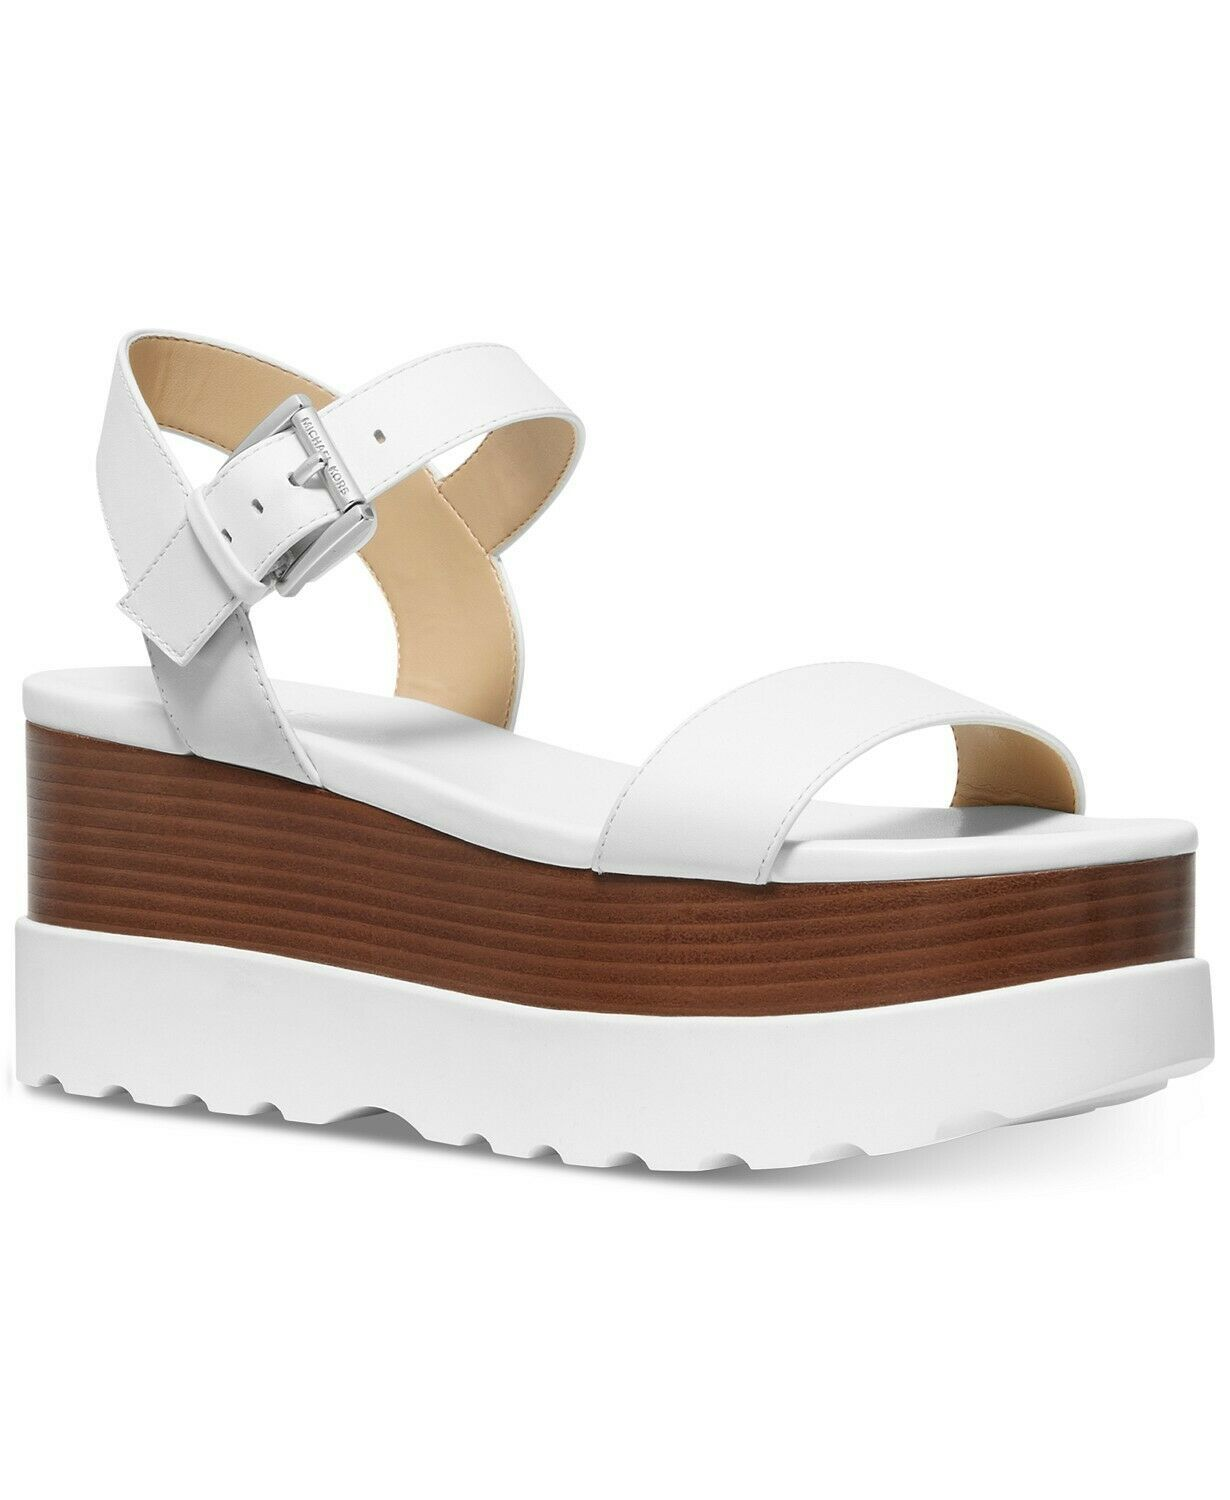 MICHAEL Michael Kors Marlon Flatform Sandals Optic White Mult Sz